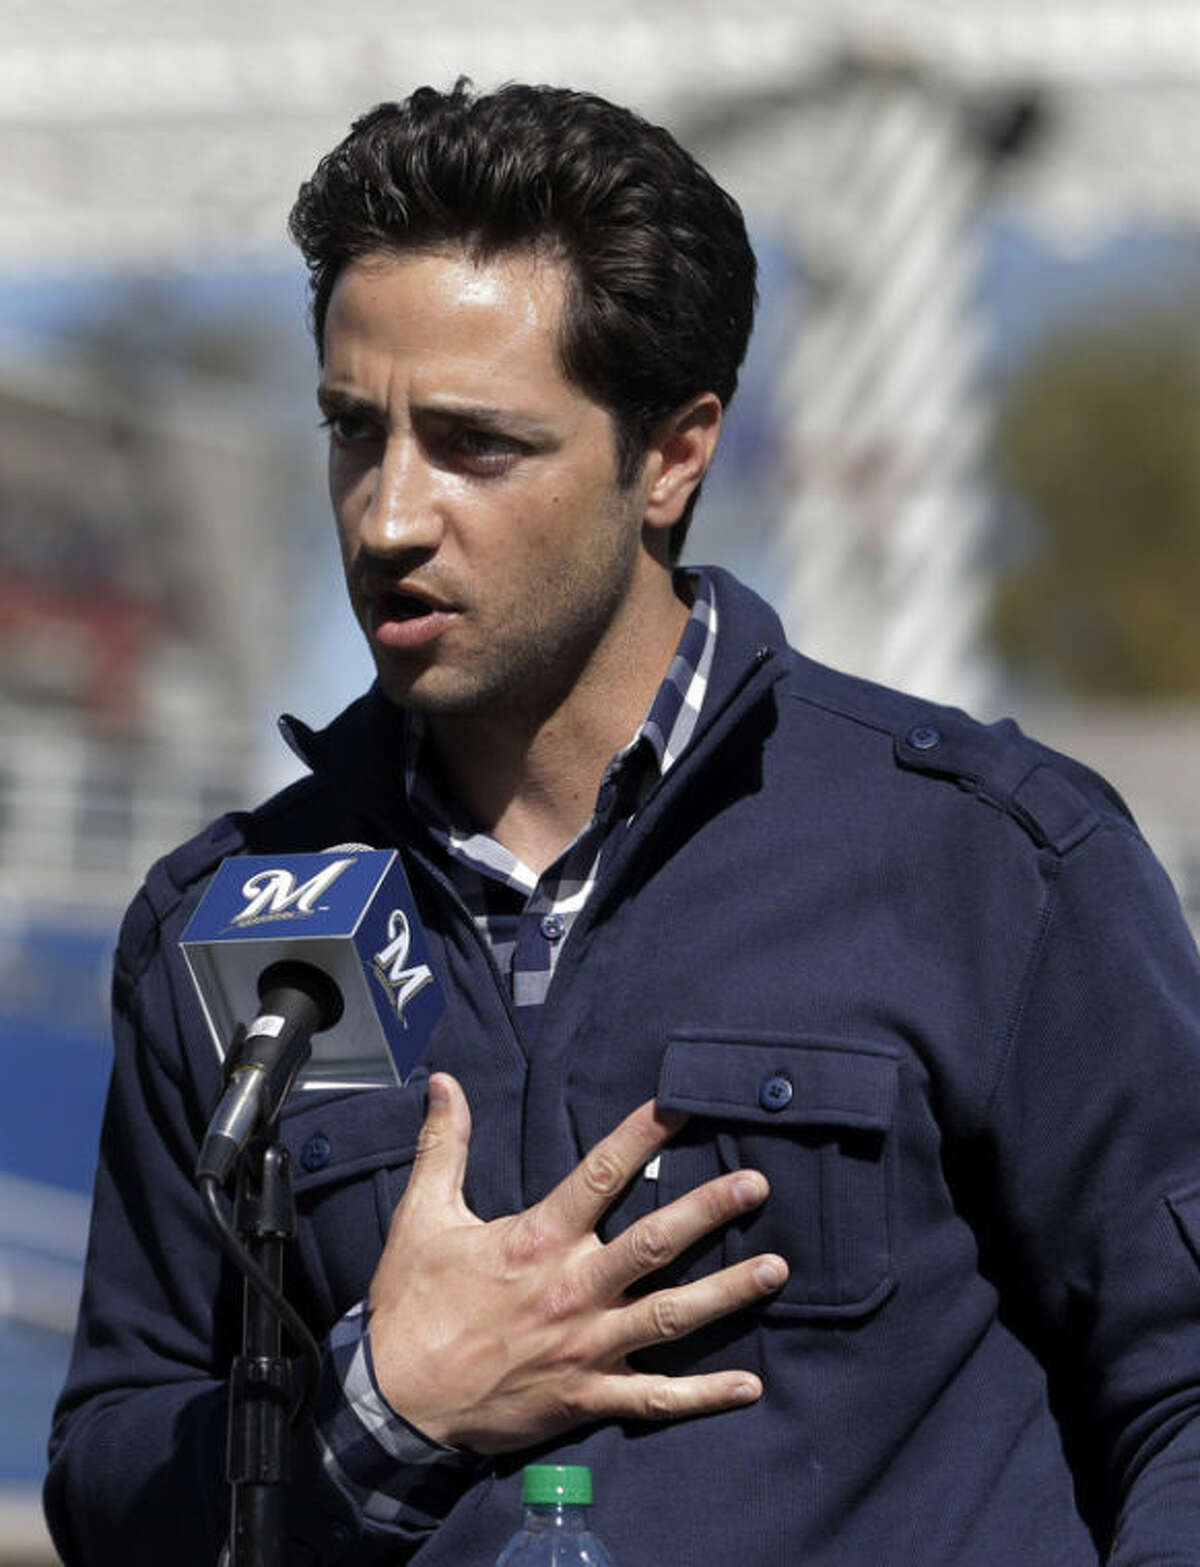 FILE - In this Feb. 24, 2012 file photo, Milwaukee Brewers' Ryan Braun speaks during a news conference at spring training baseball in Phoenix. Braun stood on a spring training field and proclaimed he was innocent of using banned testosterone. Braun has finally admitted taking performance-enhancing drugs during his NL MVP season of 2011. The suspended Milwaukee slugger said in a statement released Thursday, Aug. 22, 2013, by the Brewers that he took a cream and a lozenge containing banned substances while rehabilitating an injury. (AP Photo/Jae C. Hong, File)